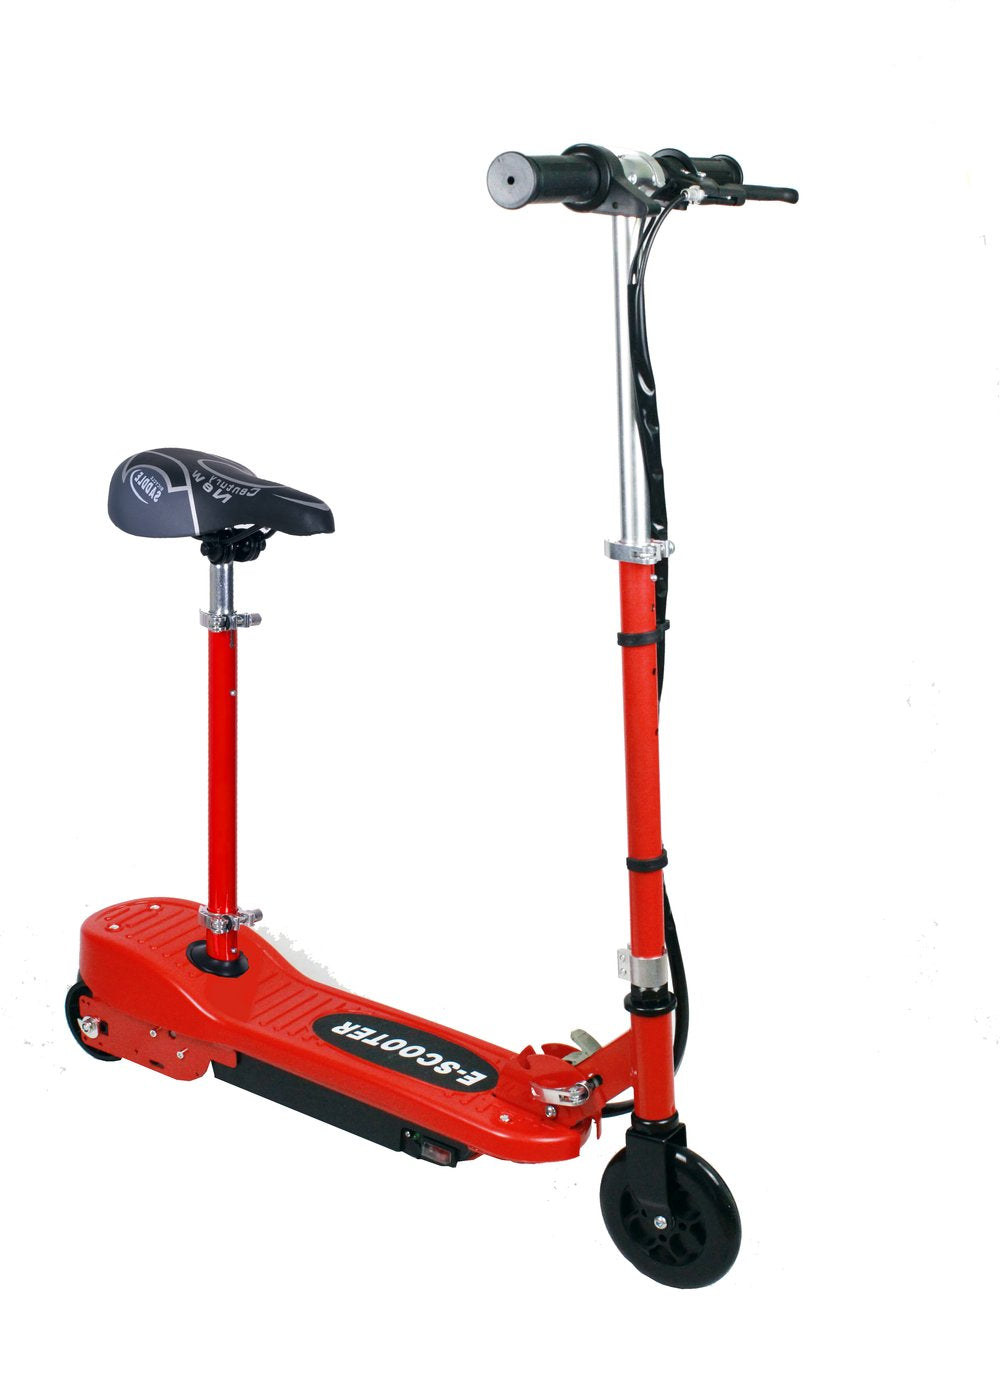 24V - Kids Folding Electric Scooter - Red - With Seat